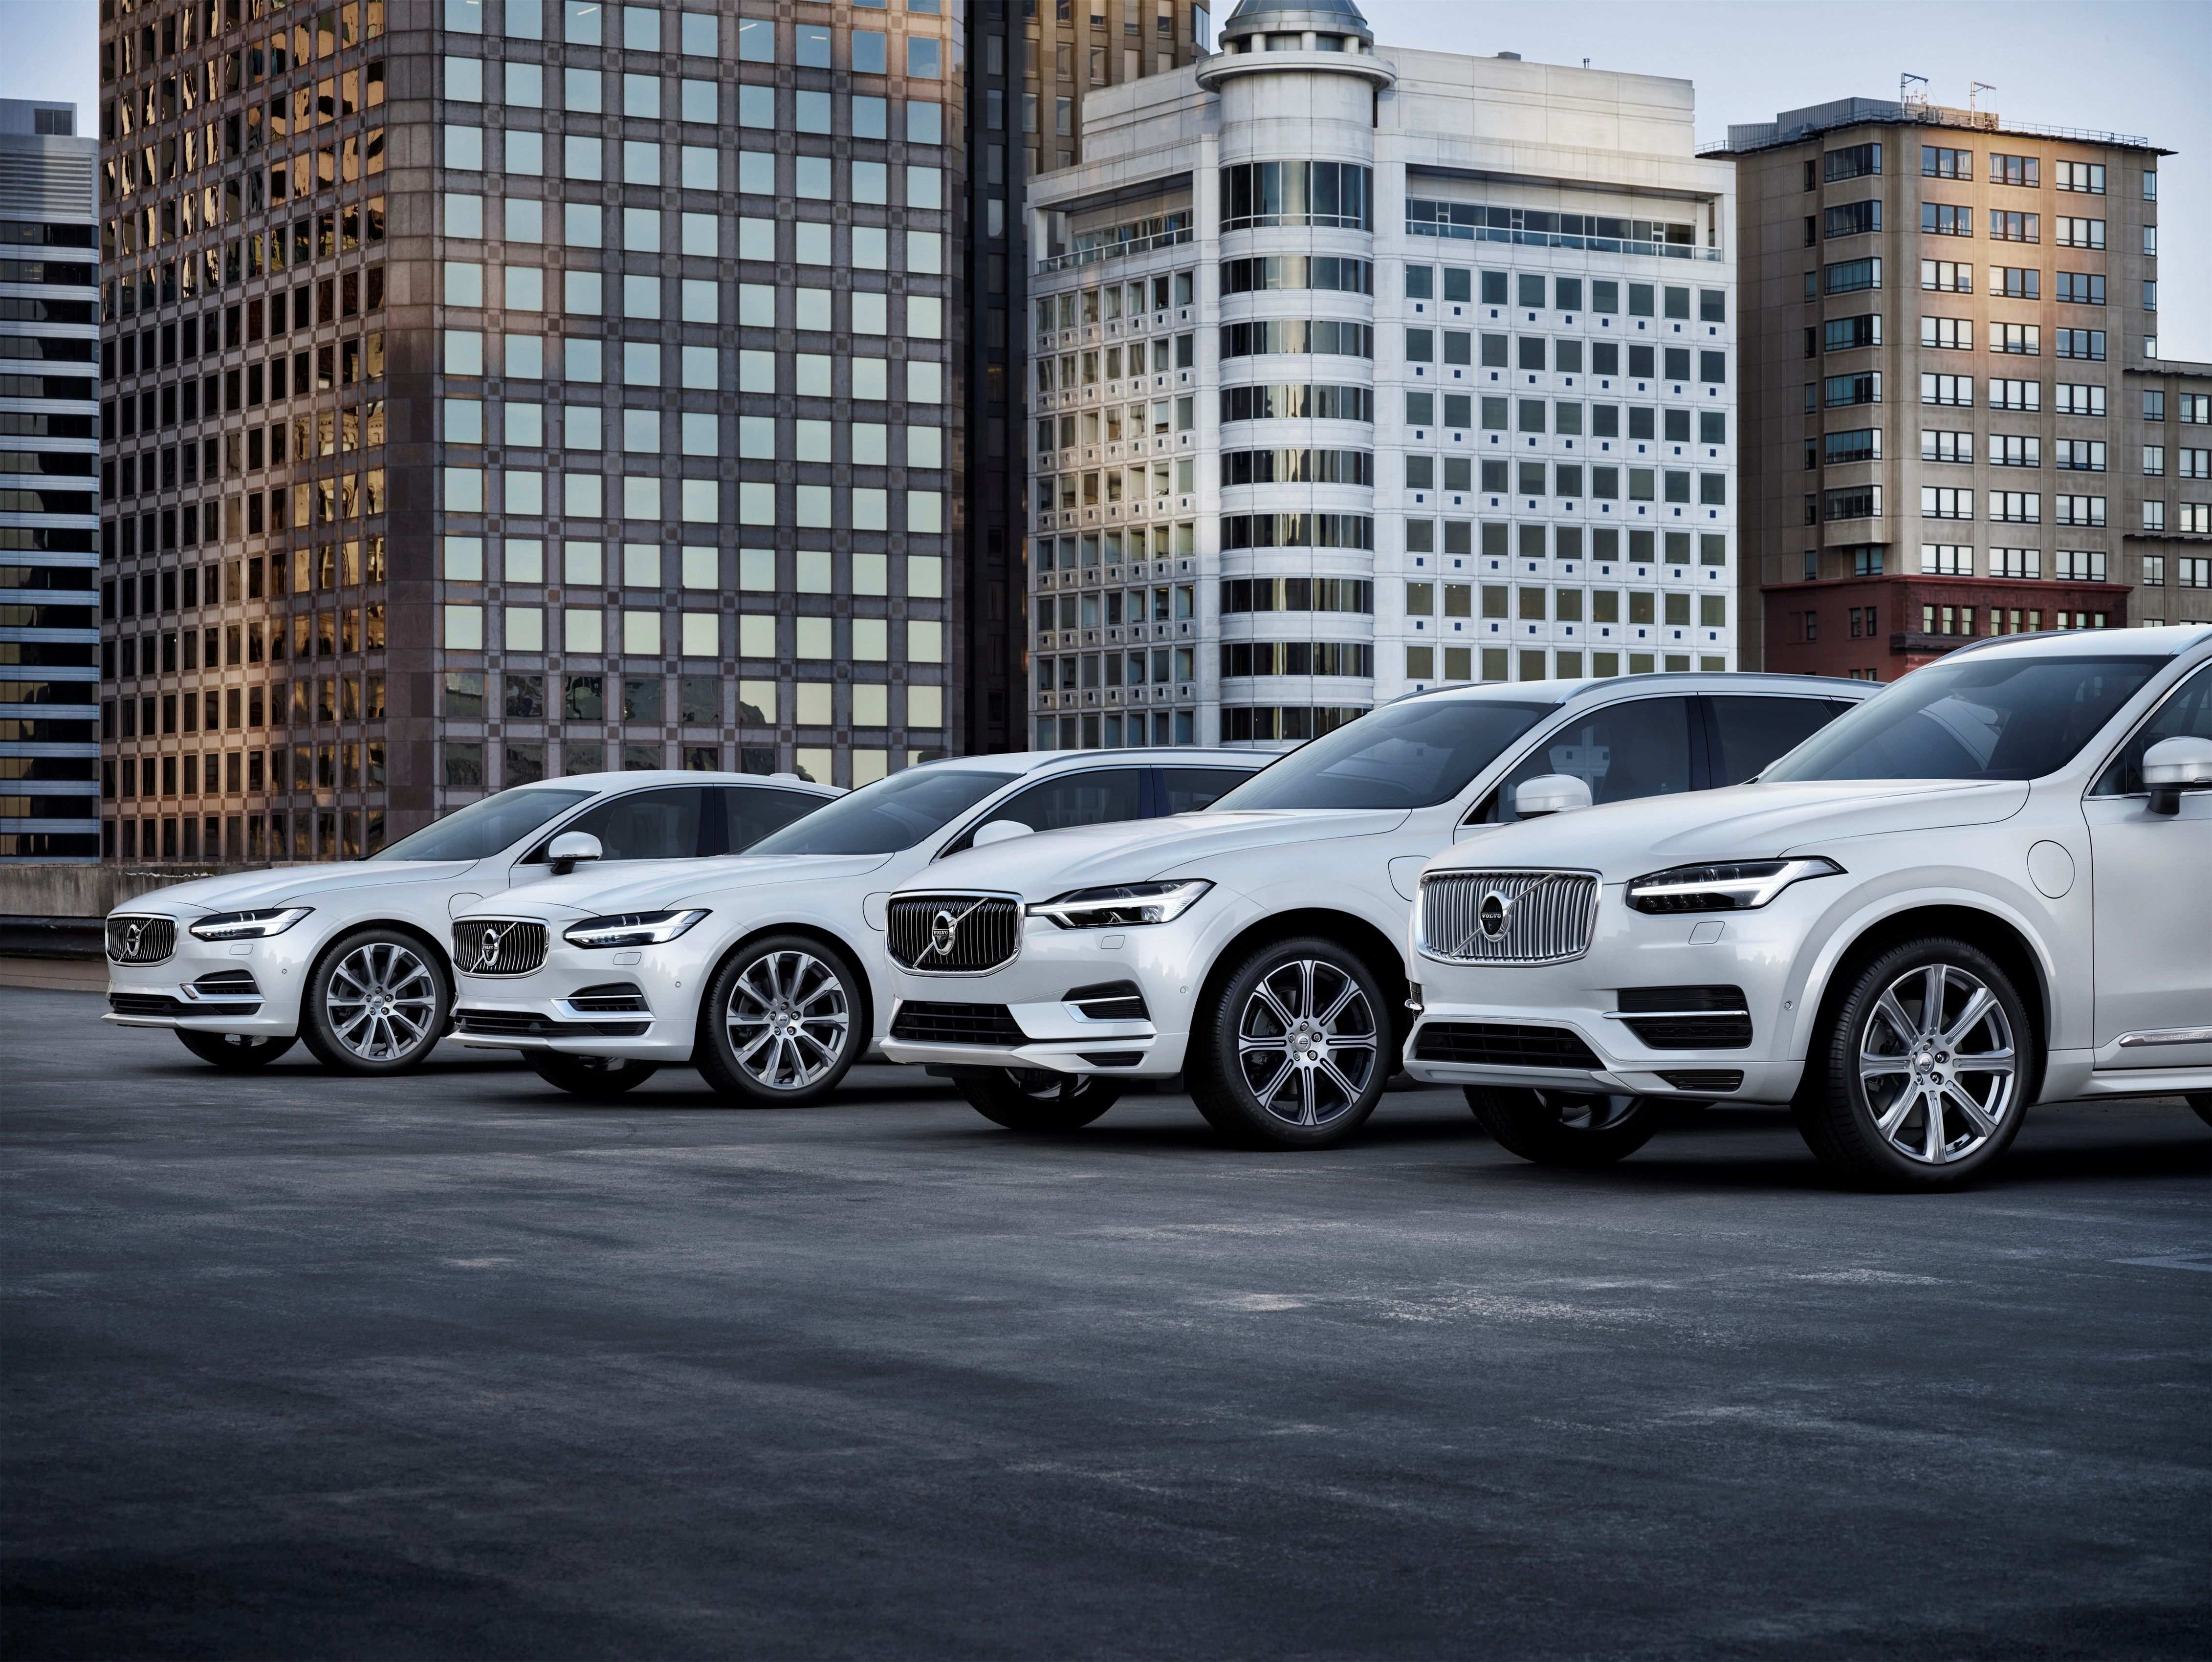 51 New Volvo 2020 All Electric Specs by Volvo 2020 All Electric